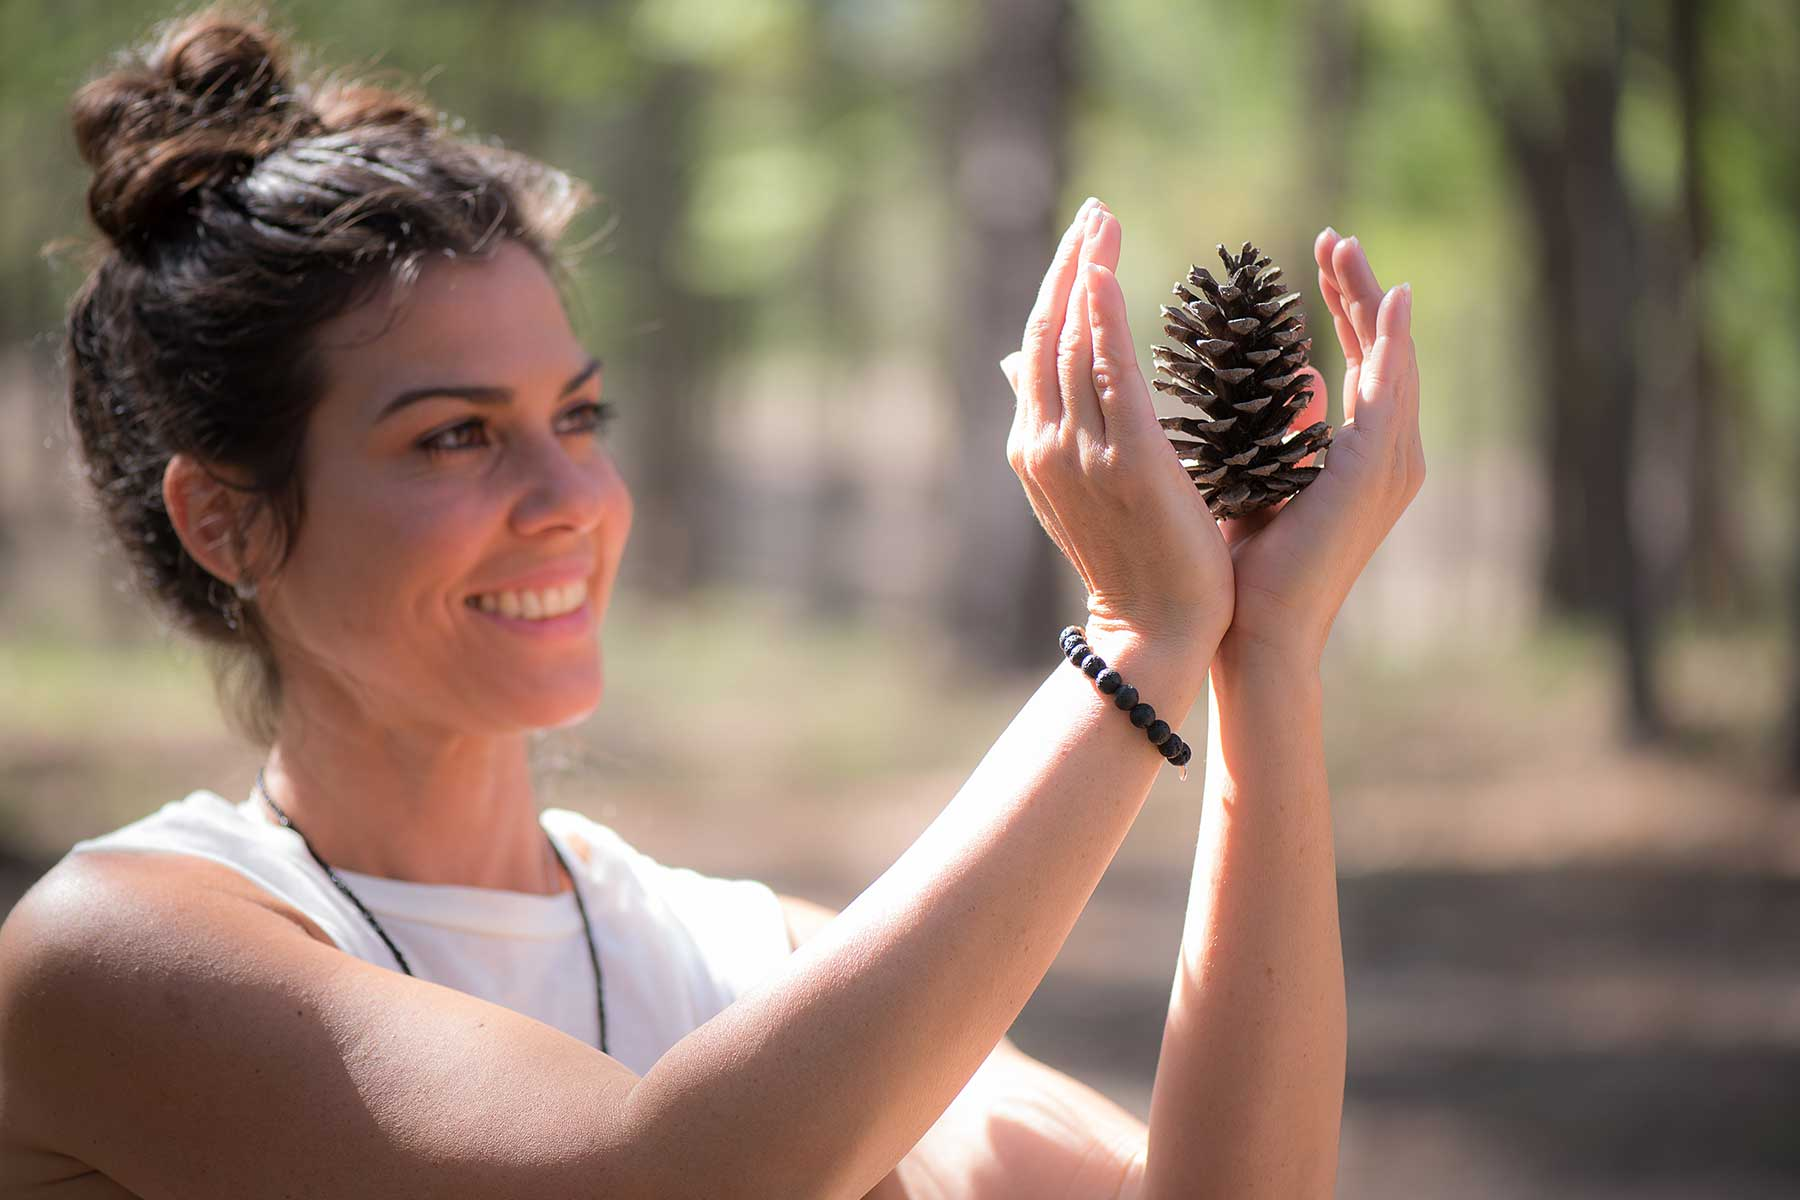 Jeny Dawson Holding A Pine Cone